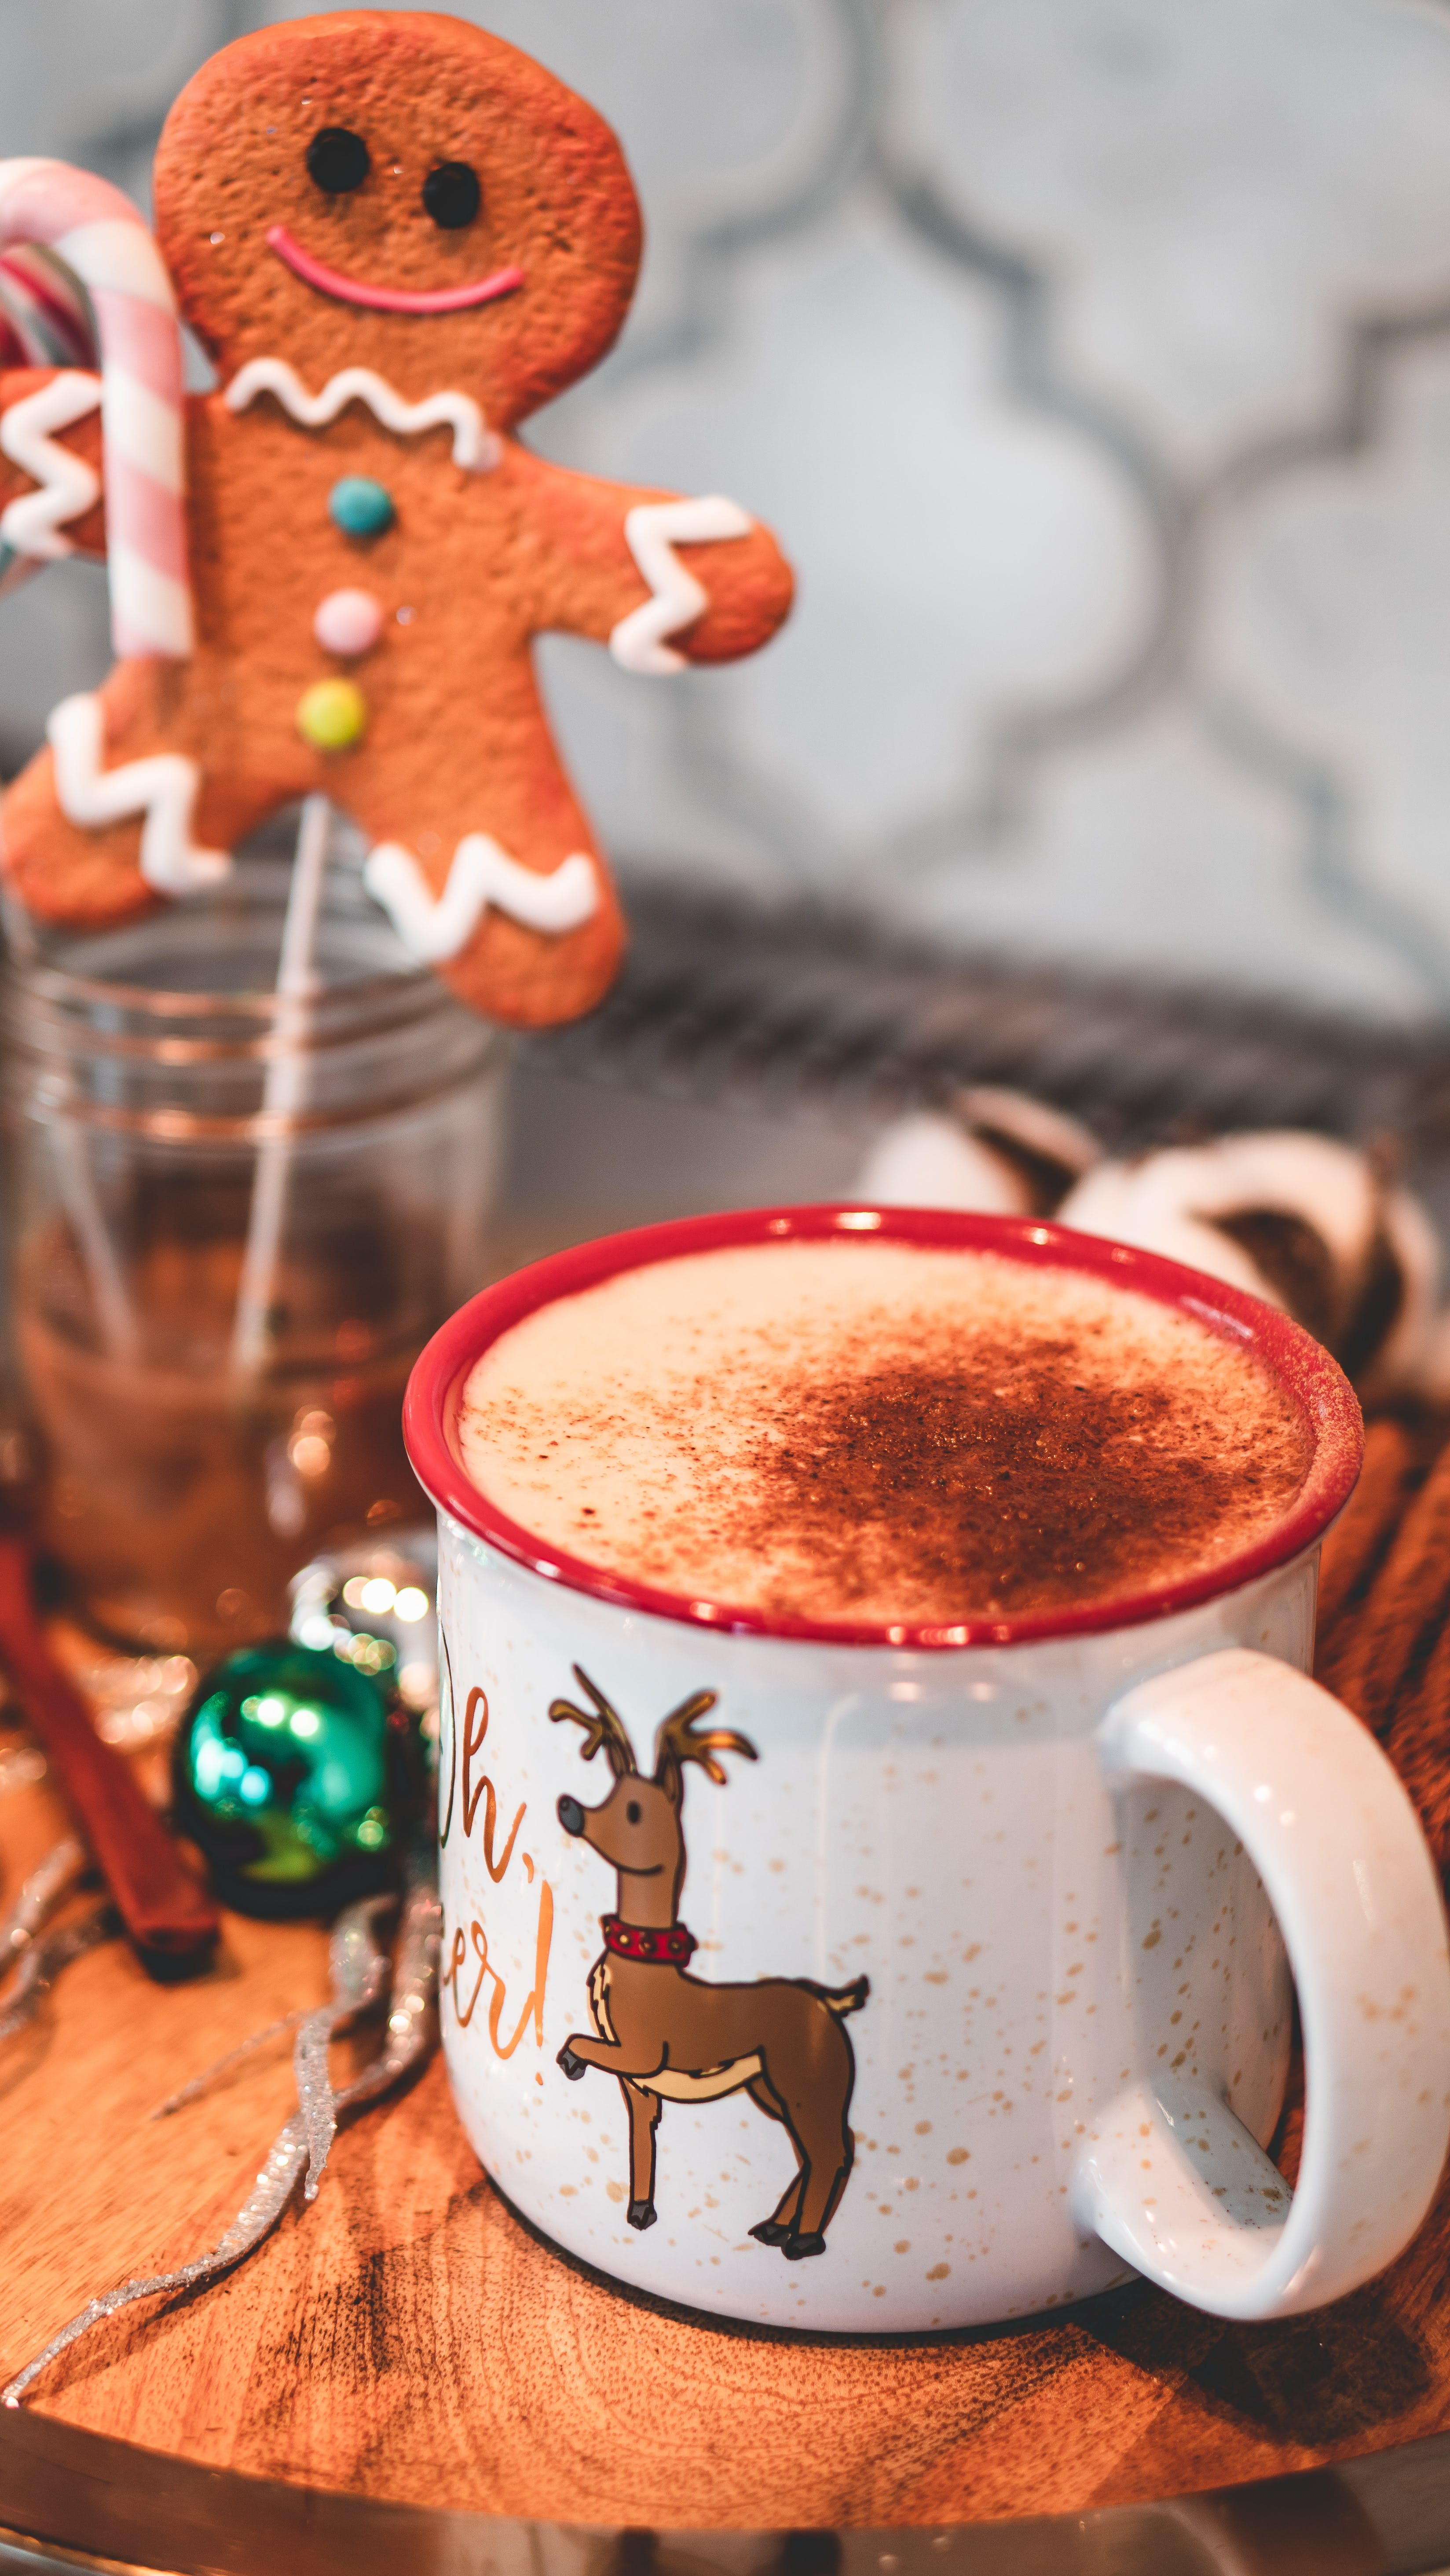 Free stock photo of drink, ginger bread, photoshoot, tonic bar